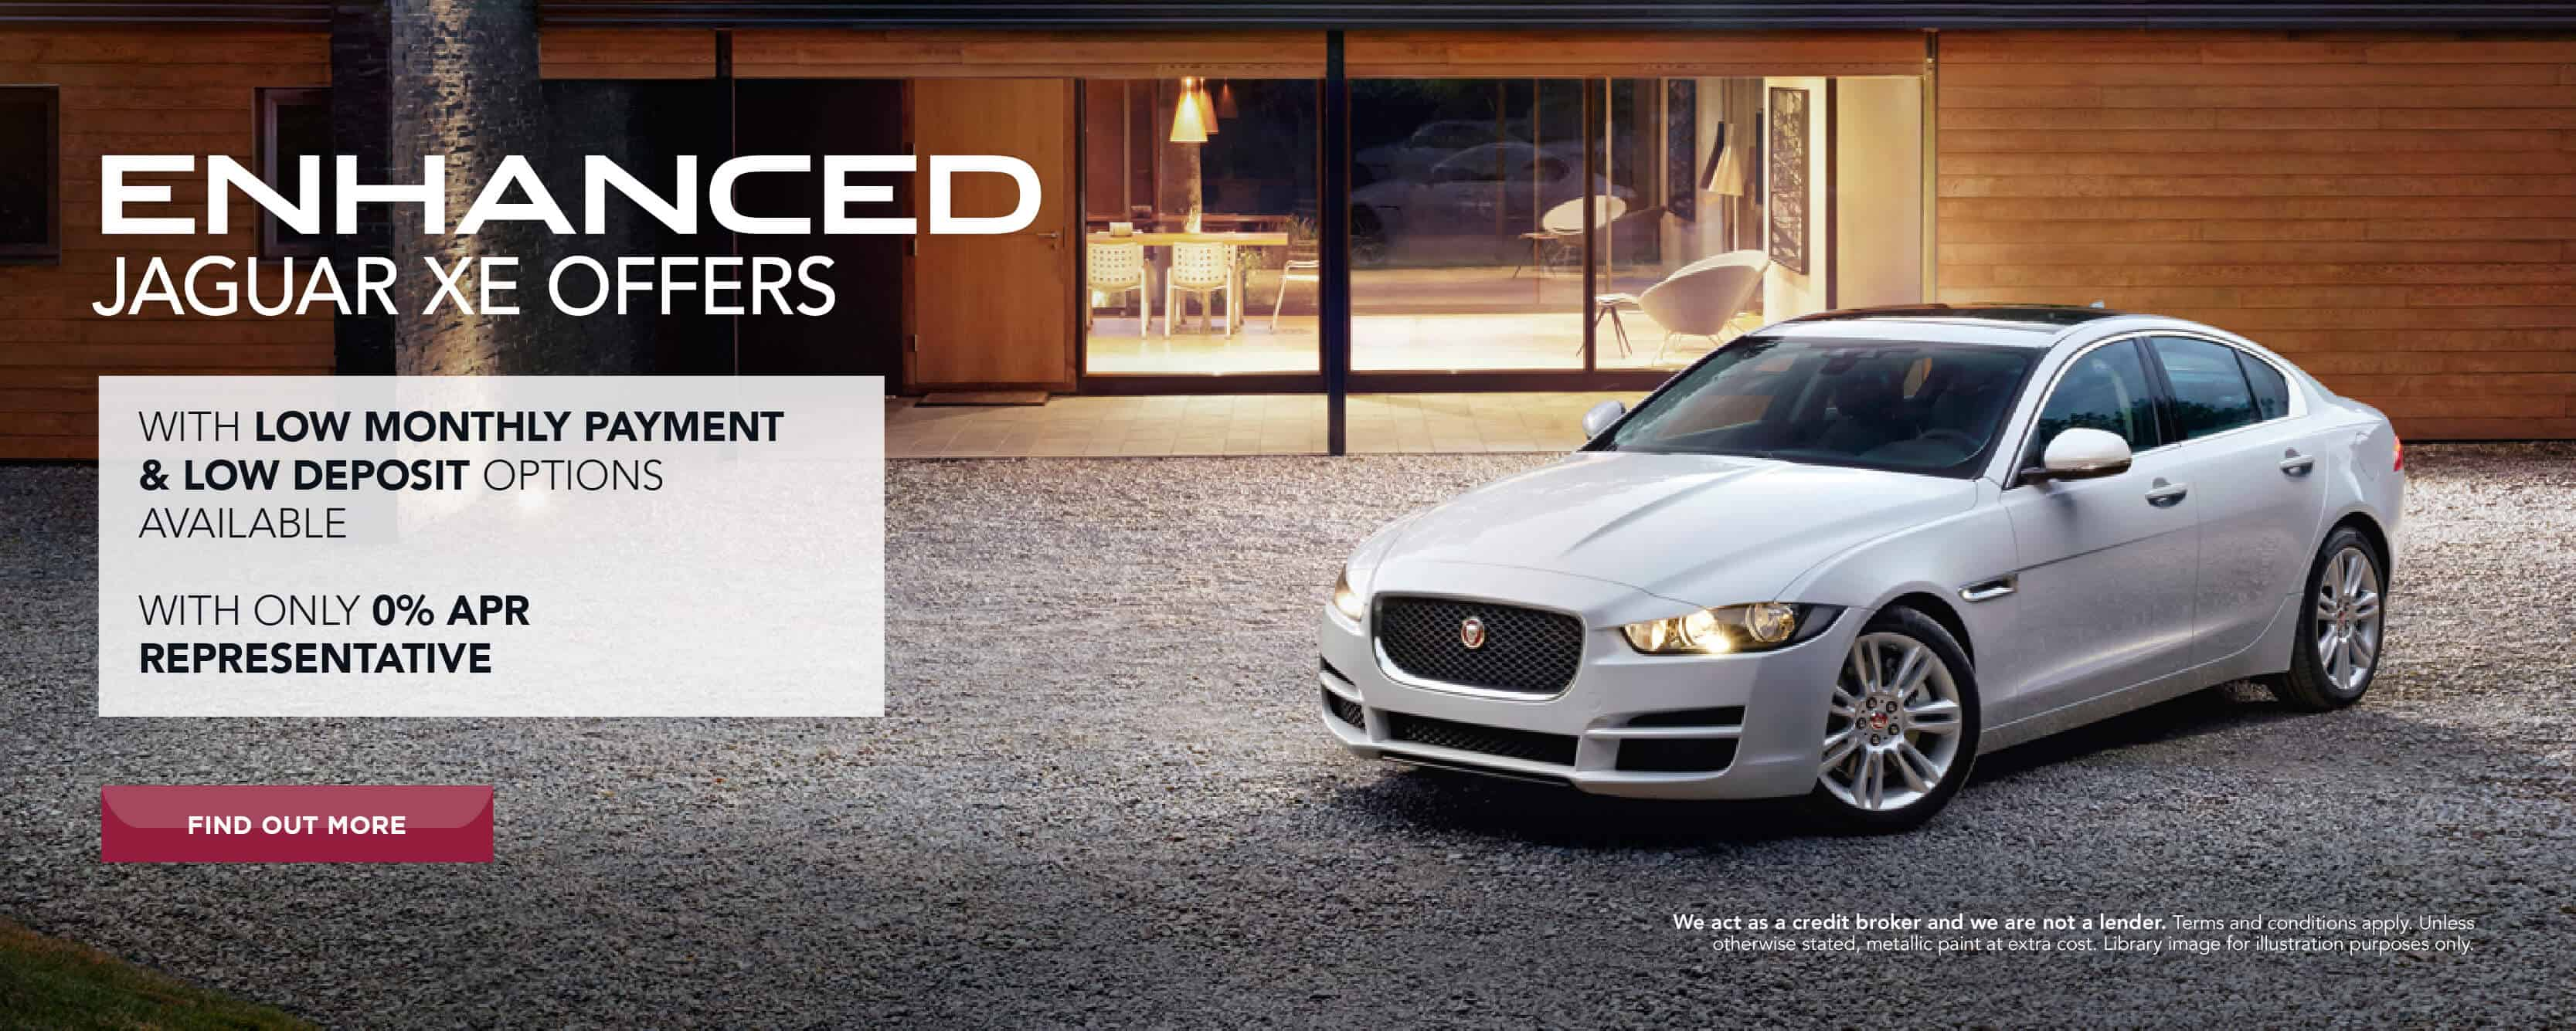 Jaguar enhanced XE offers BB